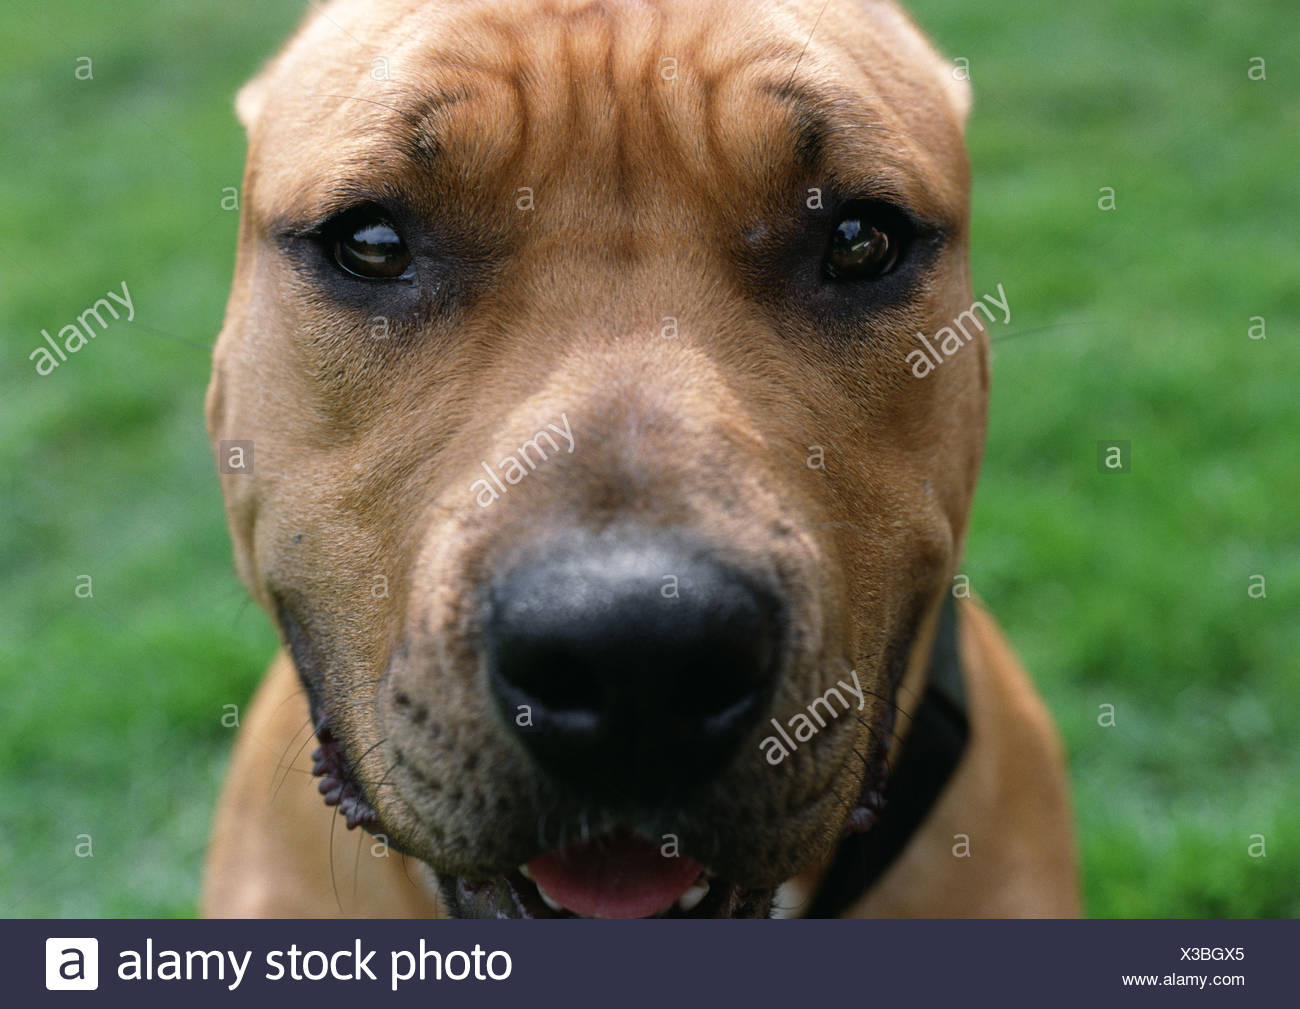 Dog with wrinkled brow, face. - Stock Image